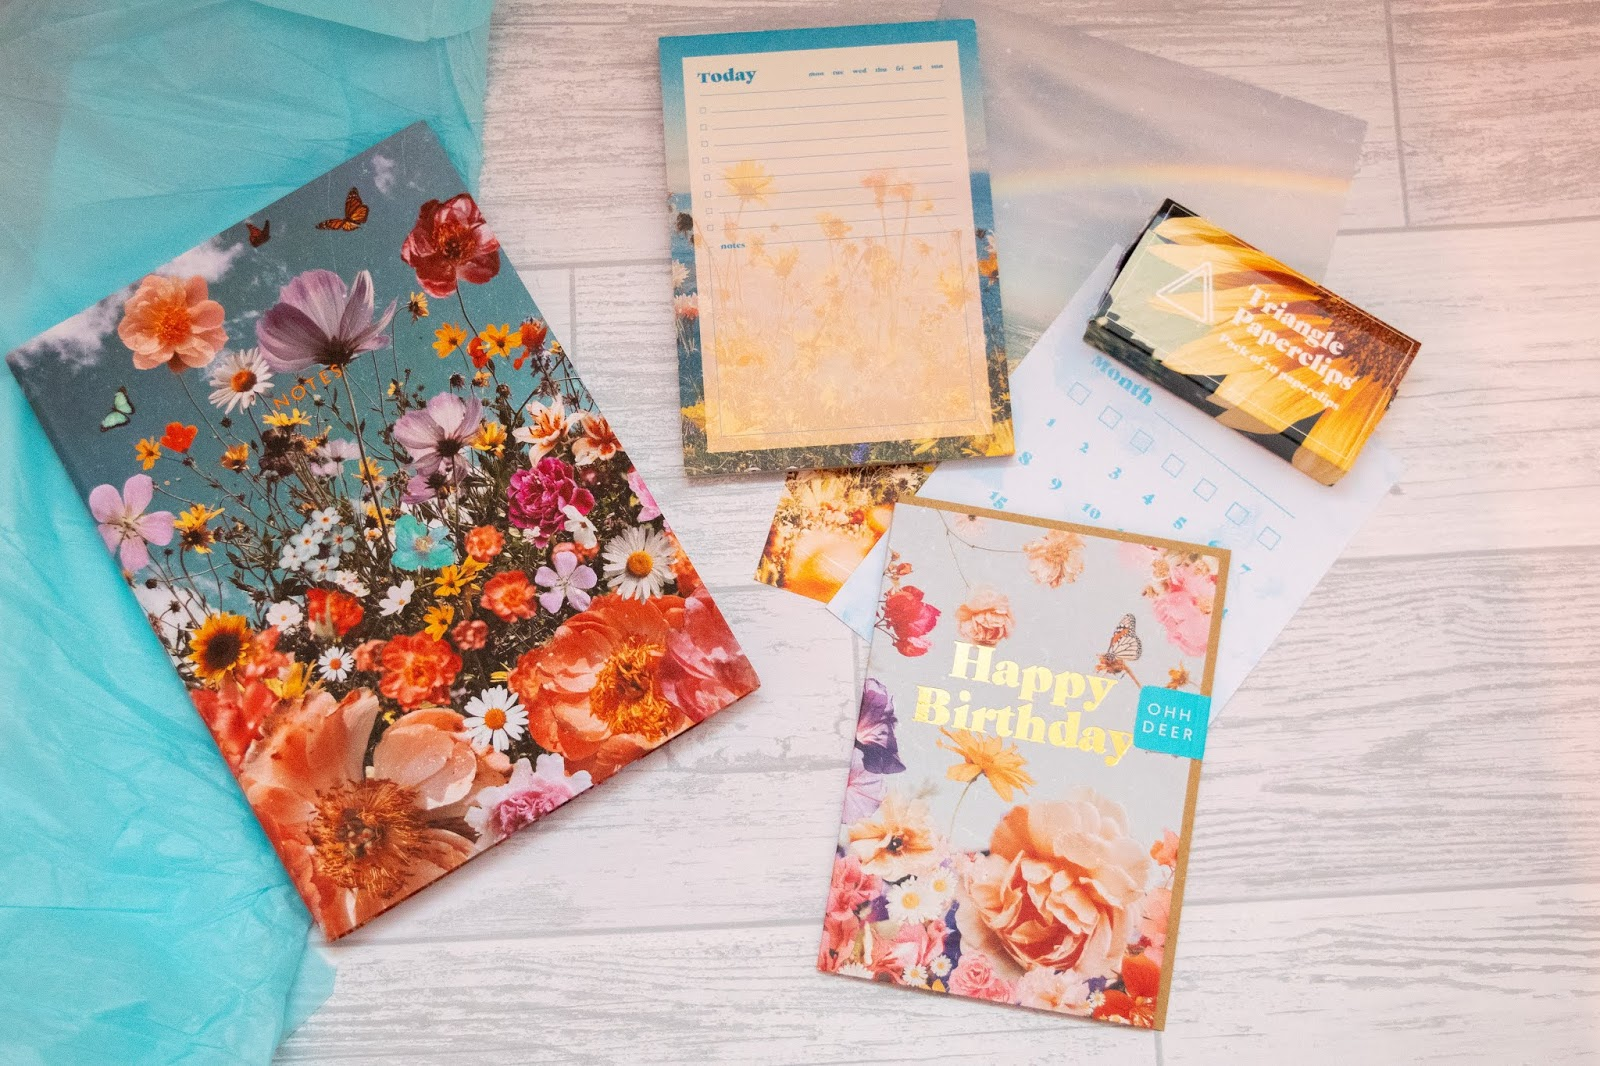 A view of the contents inside the January 2020 papergang box including a notebook, list pad, box of paperclips and paper stationery